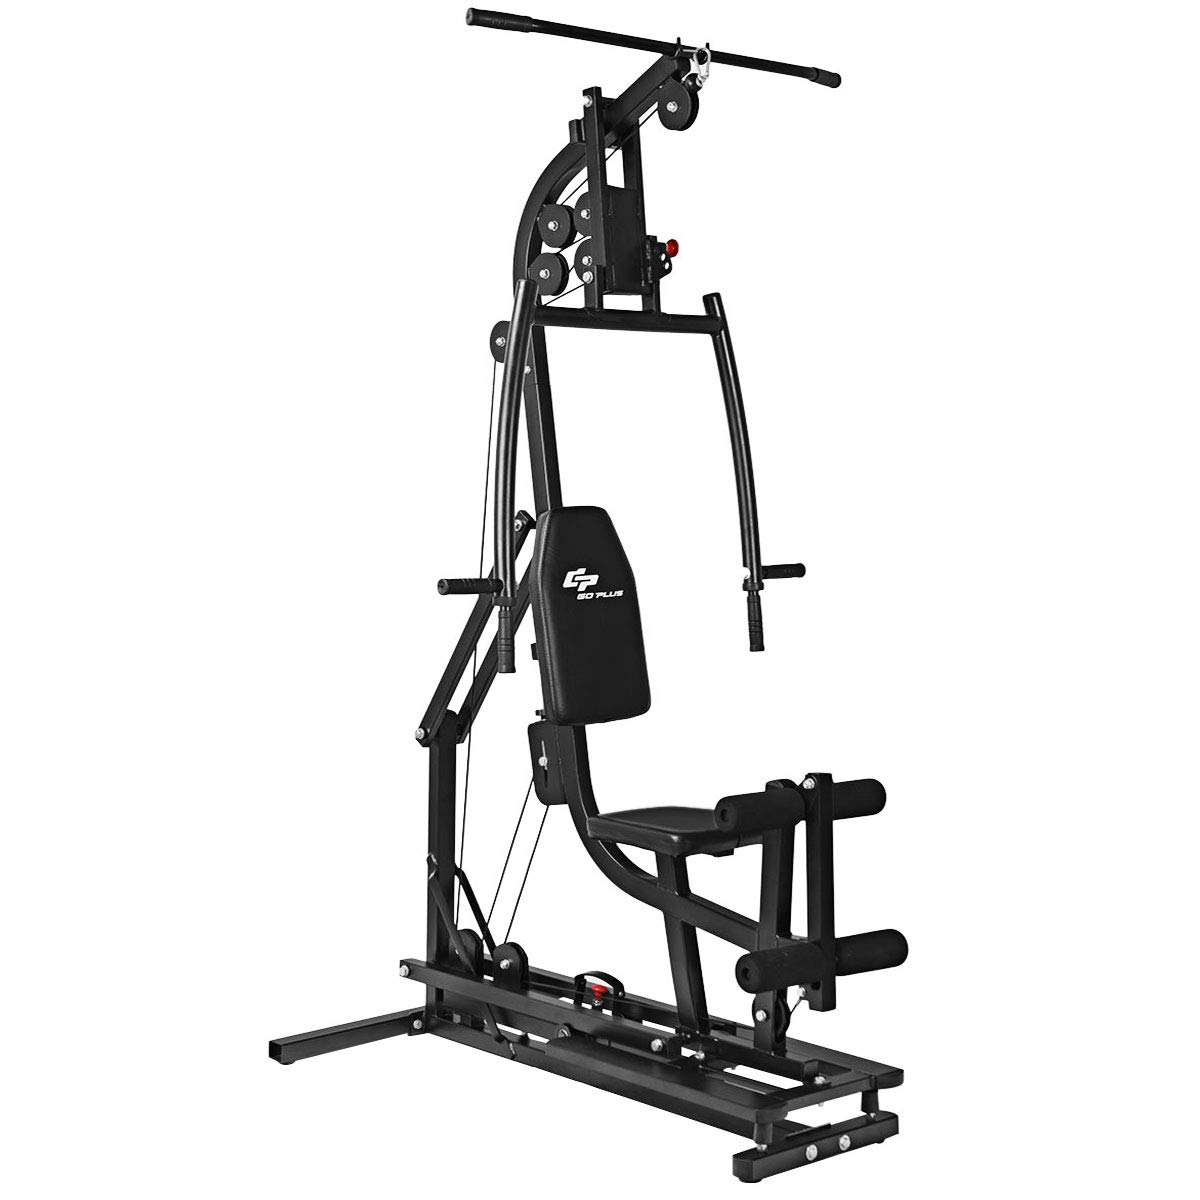 Goplus Multifunctional Trainer Home Gym Station Workout Machine for Total  Body Training Max Load 330LBS.